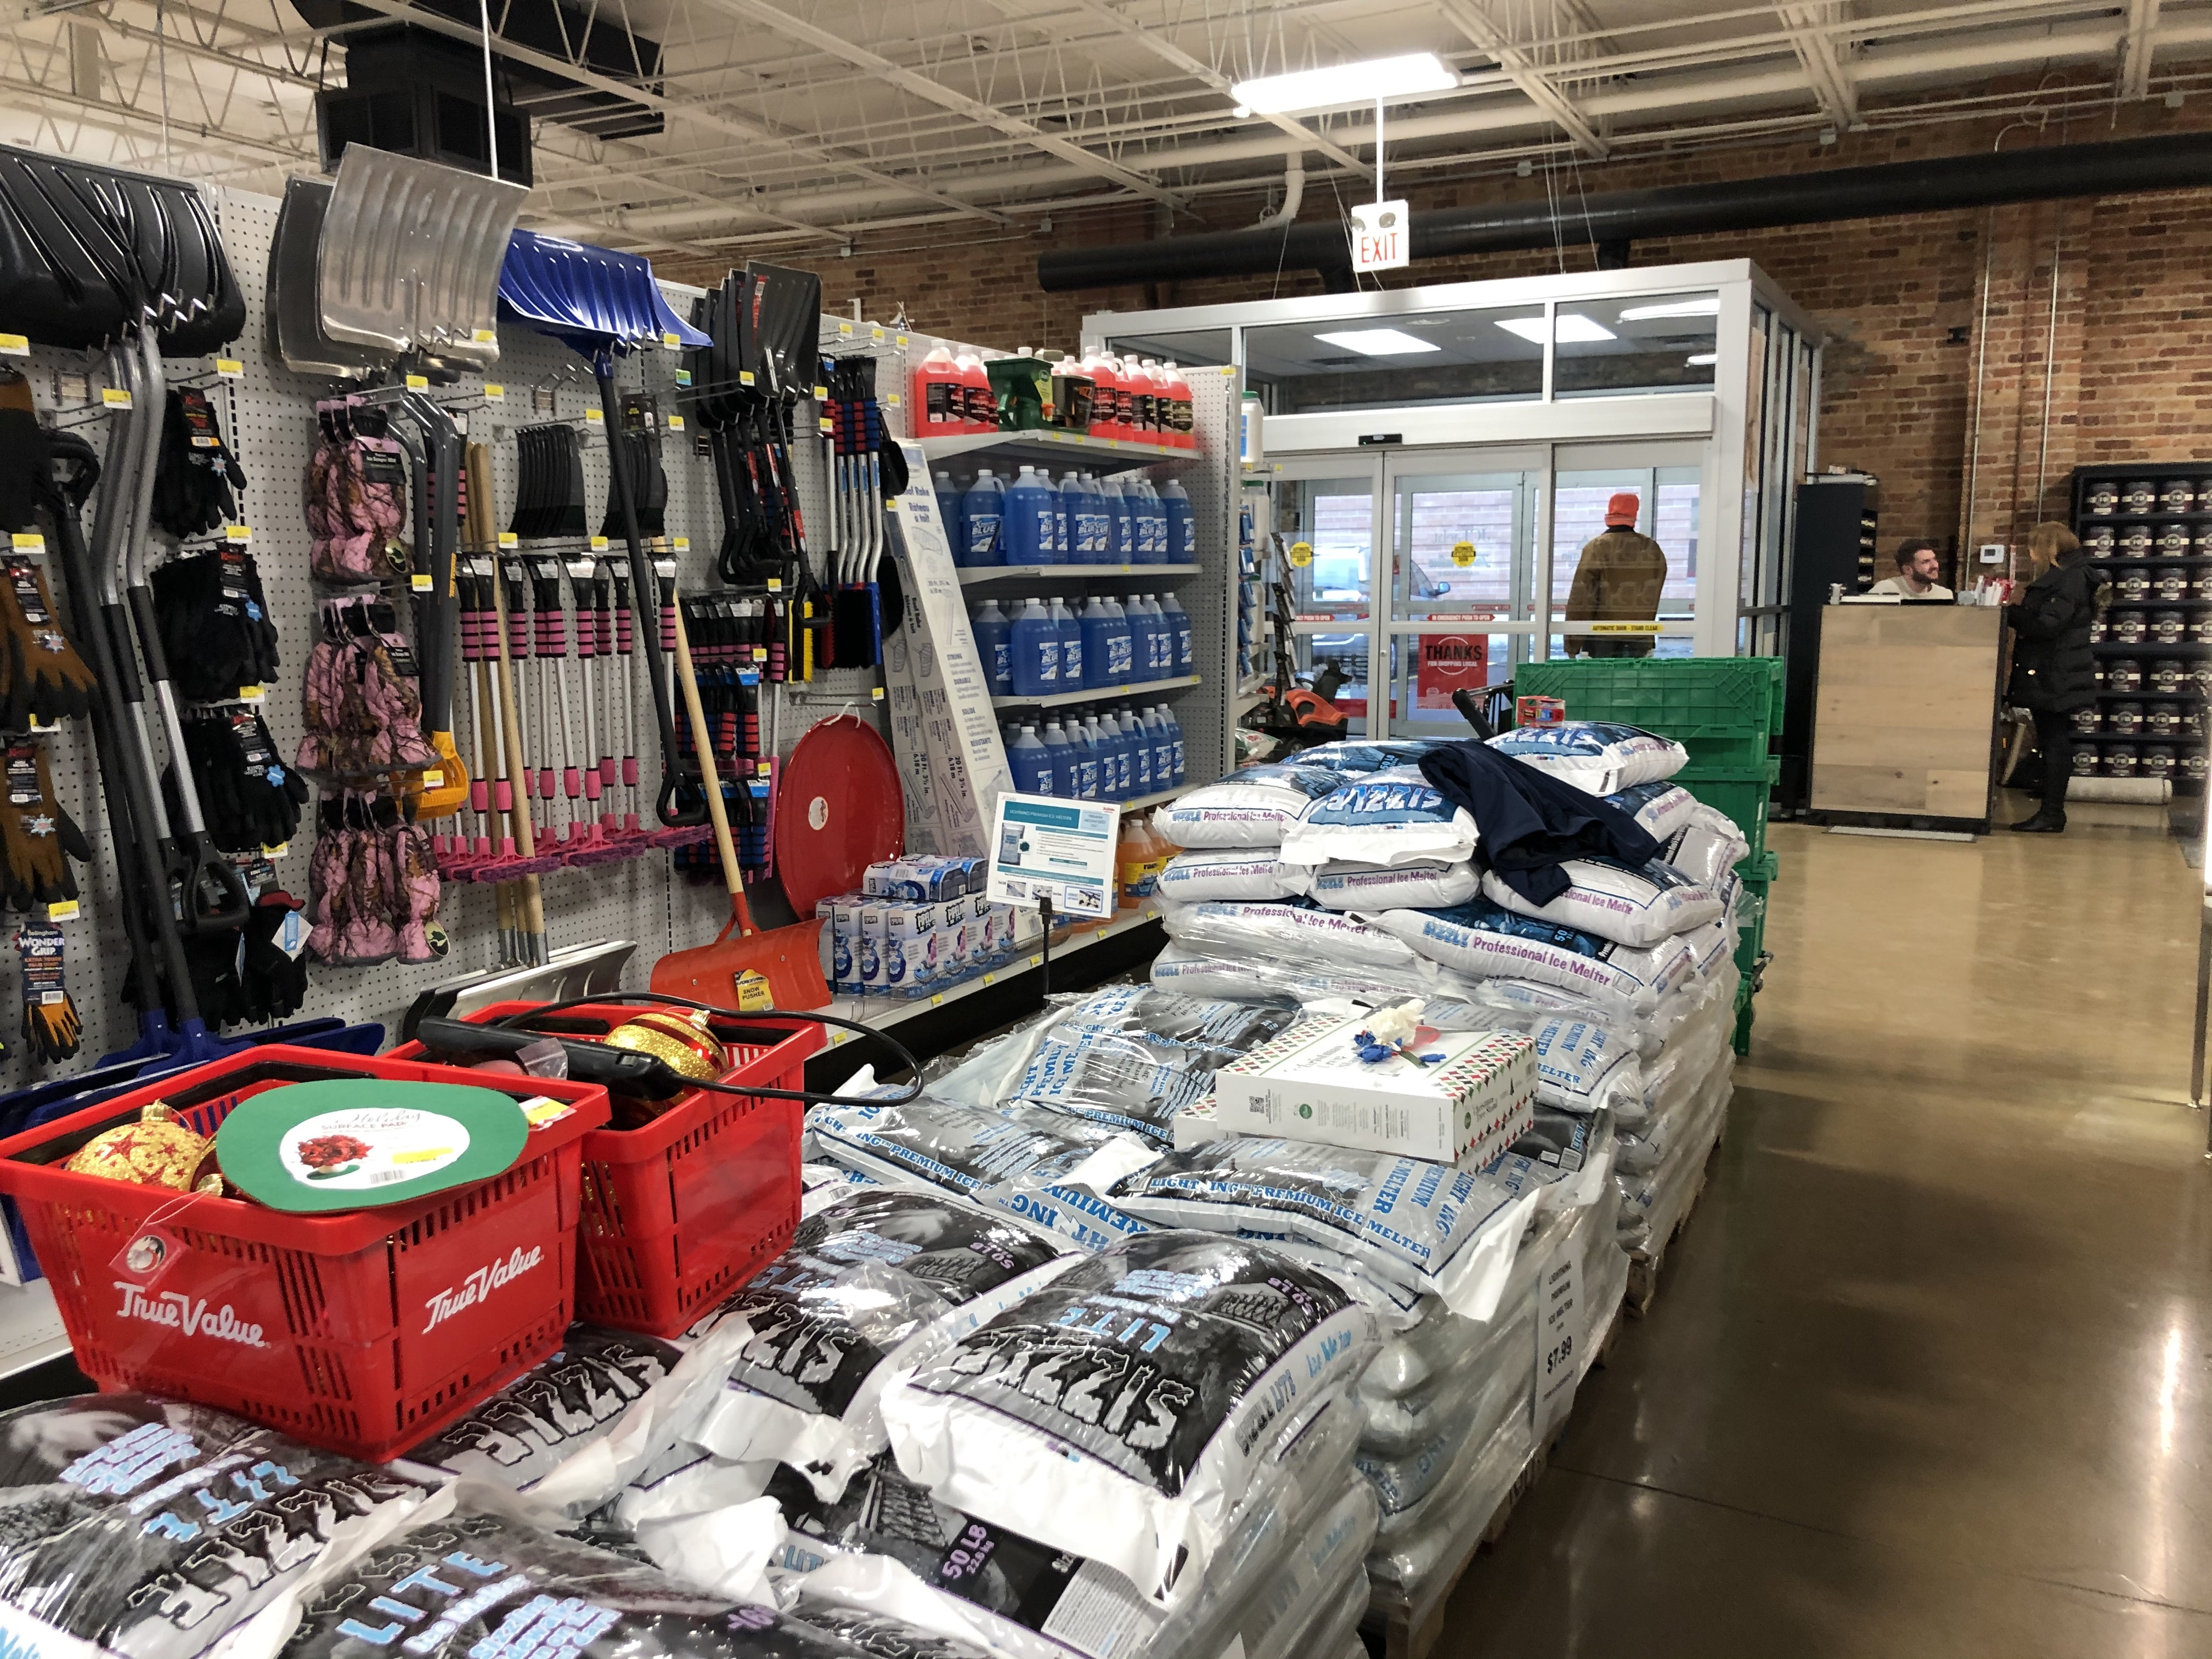 Supplies to deal with the impending ice and snow in the forecast are stacked up on Friday at J.C. Licht True Value, 18 S. Sangamon St.